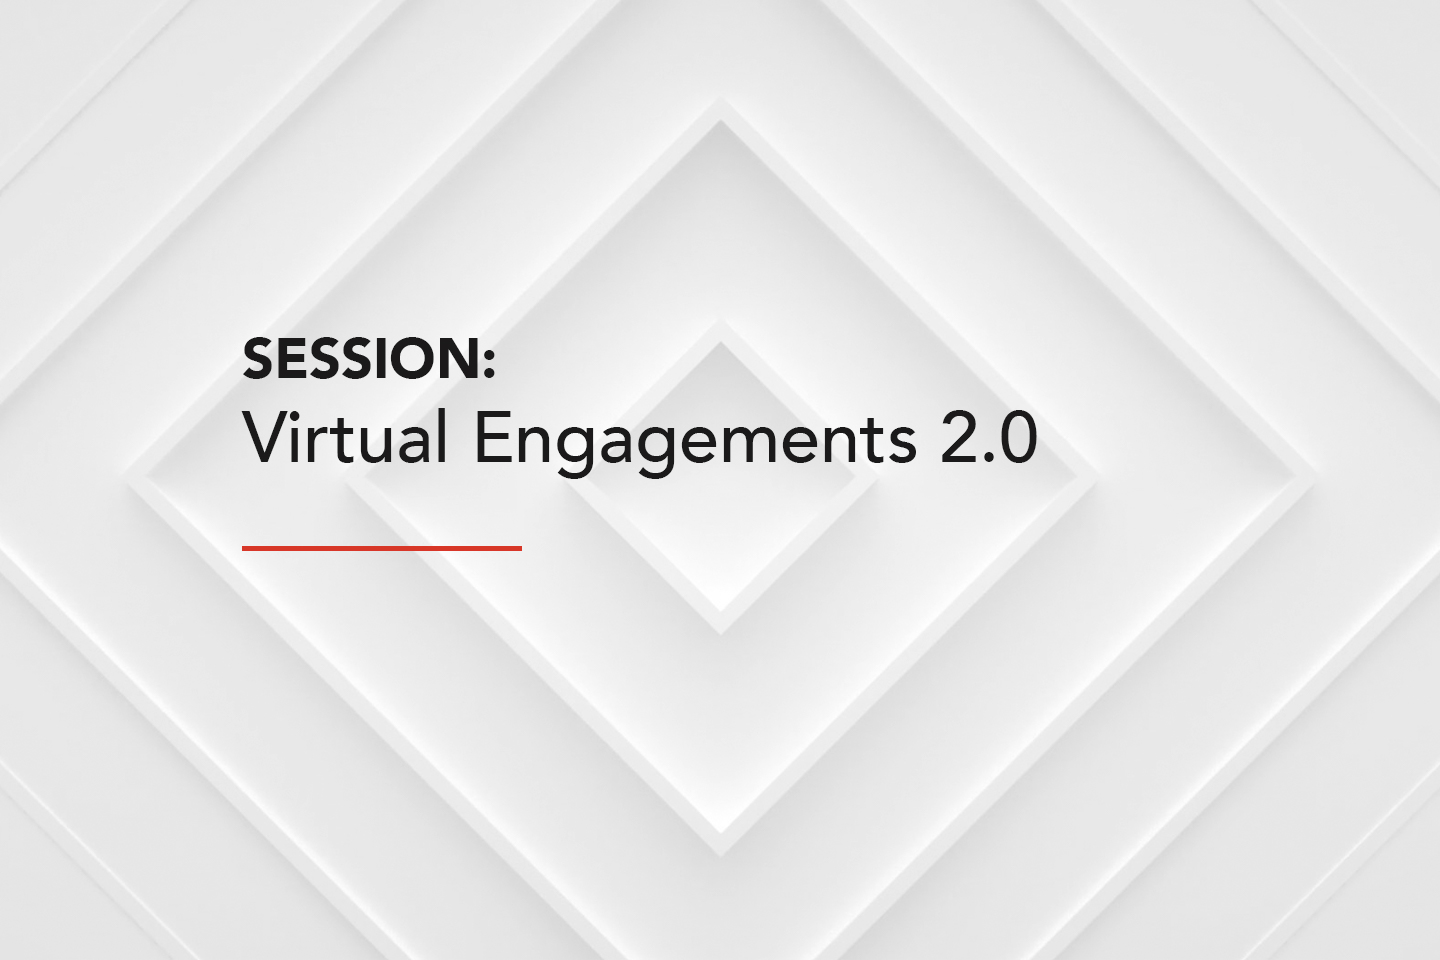 Session Virtual Engagements